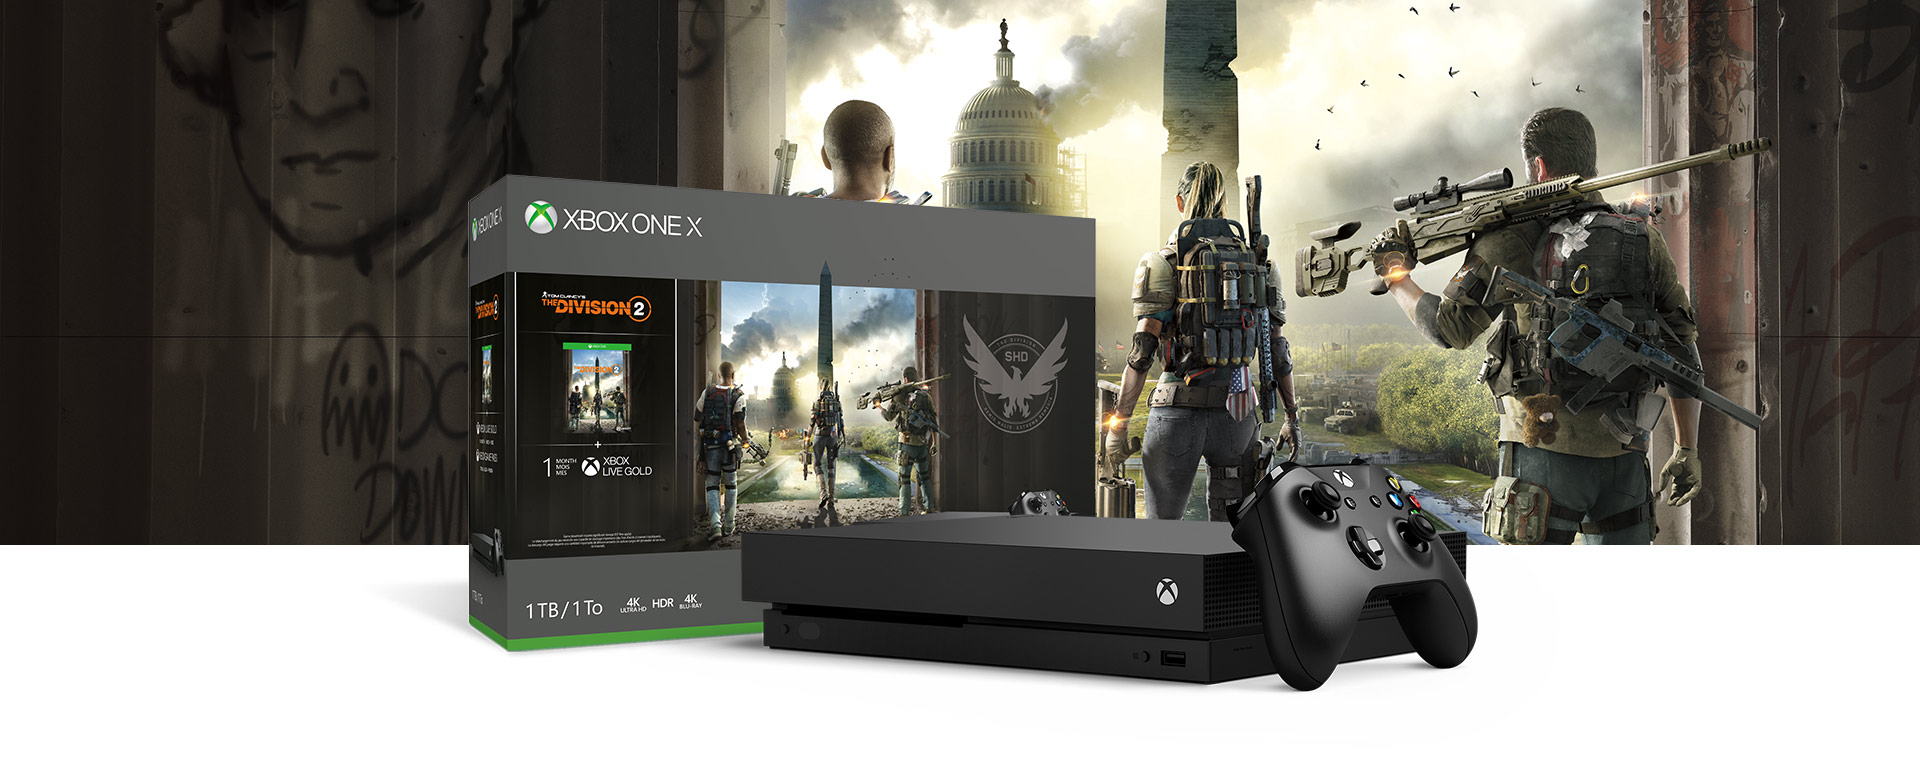 Xbox One X-konsol foran en fysisk bundle-æske med Tom Clancy's The Division 2-illustration